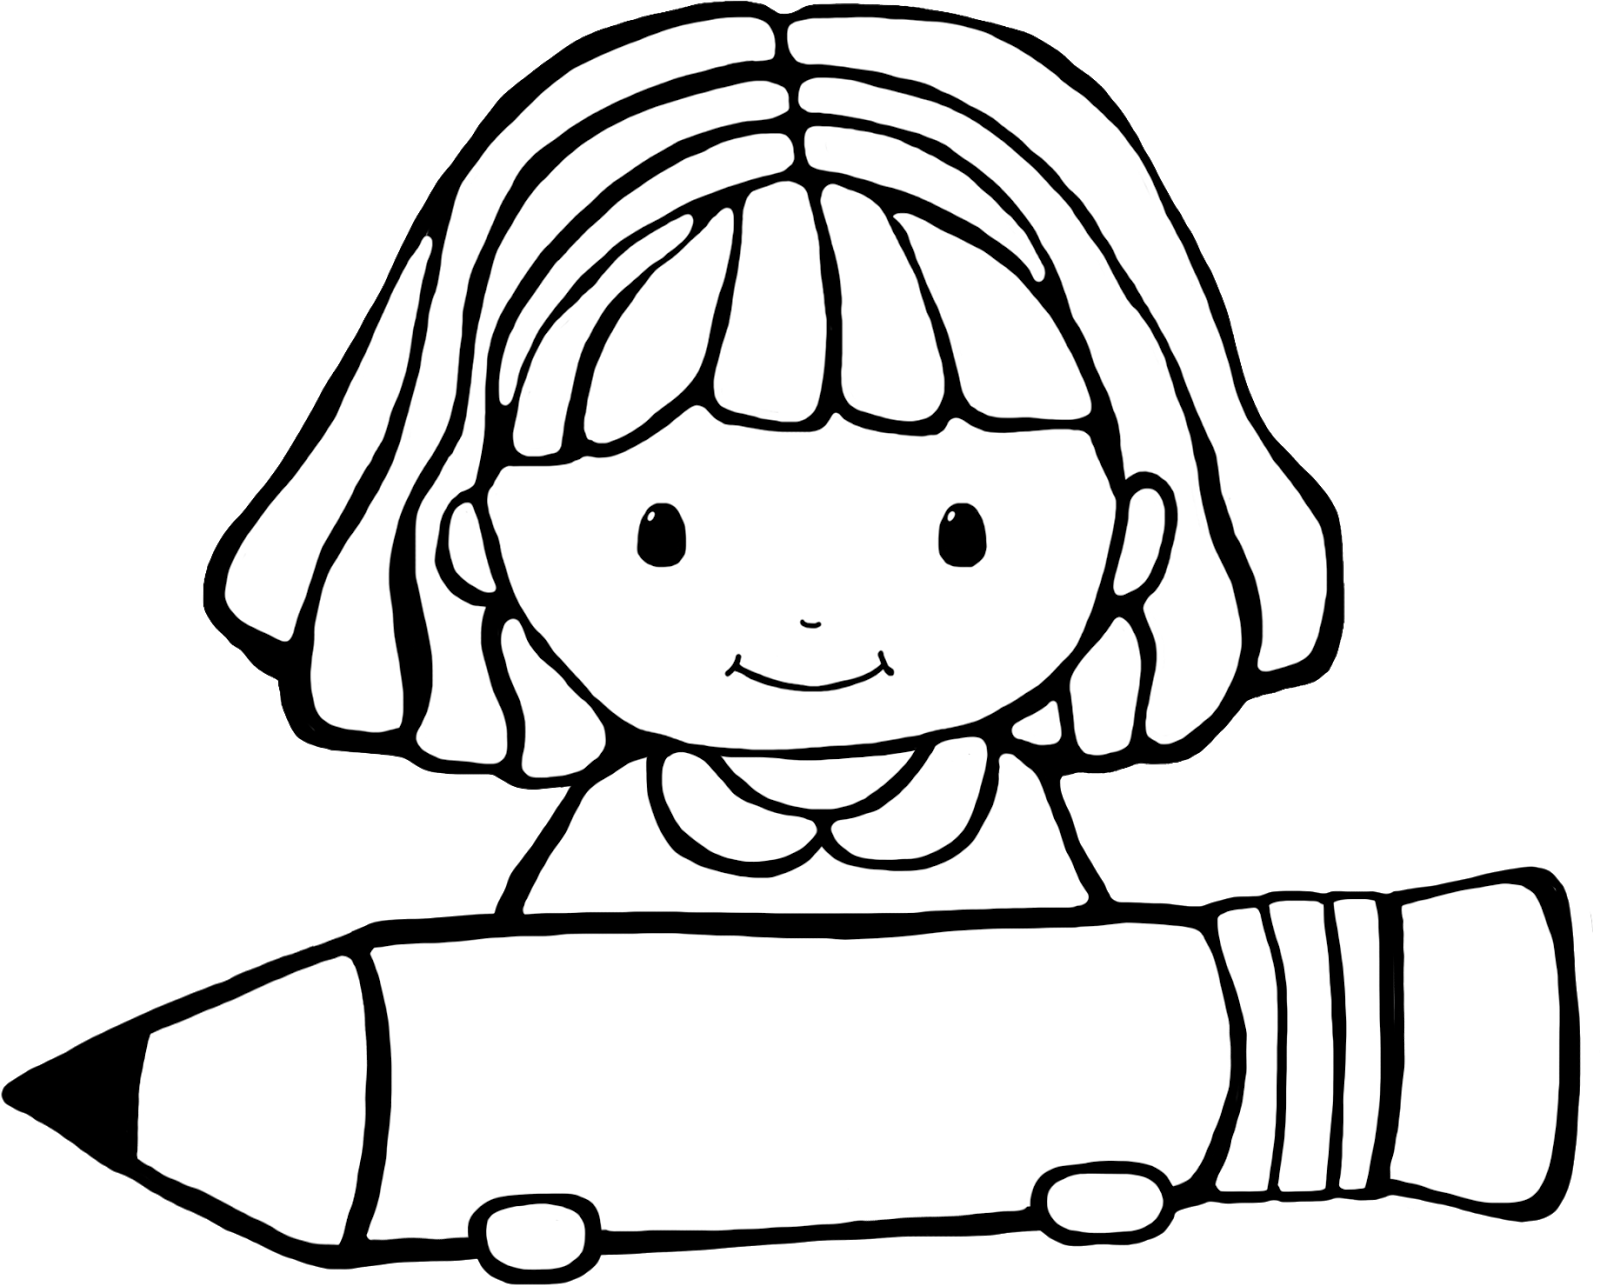 Clipart writing black and white, Clipart writing black and.